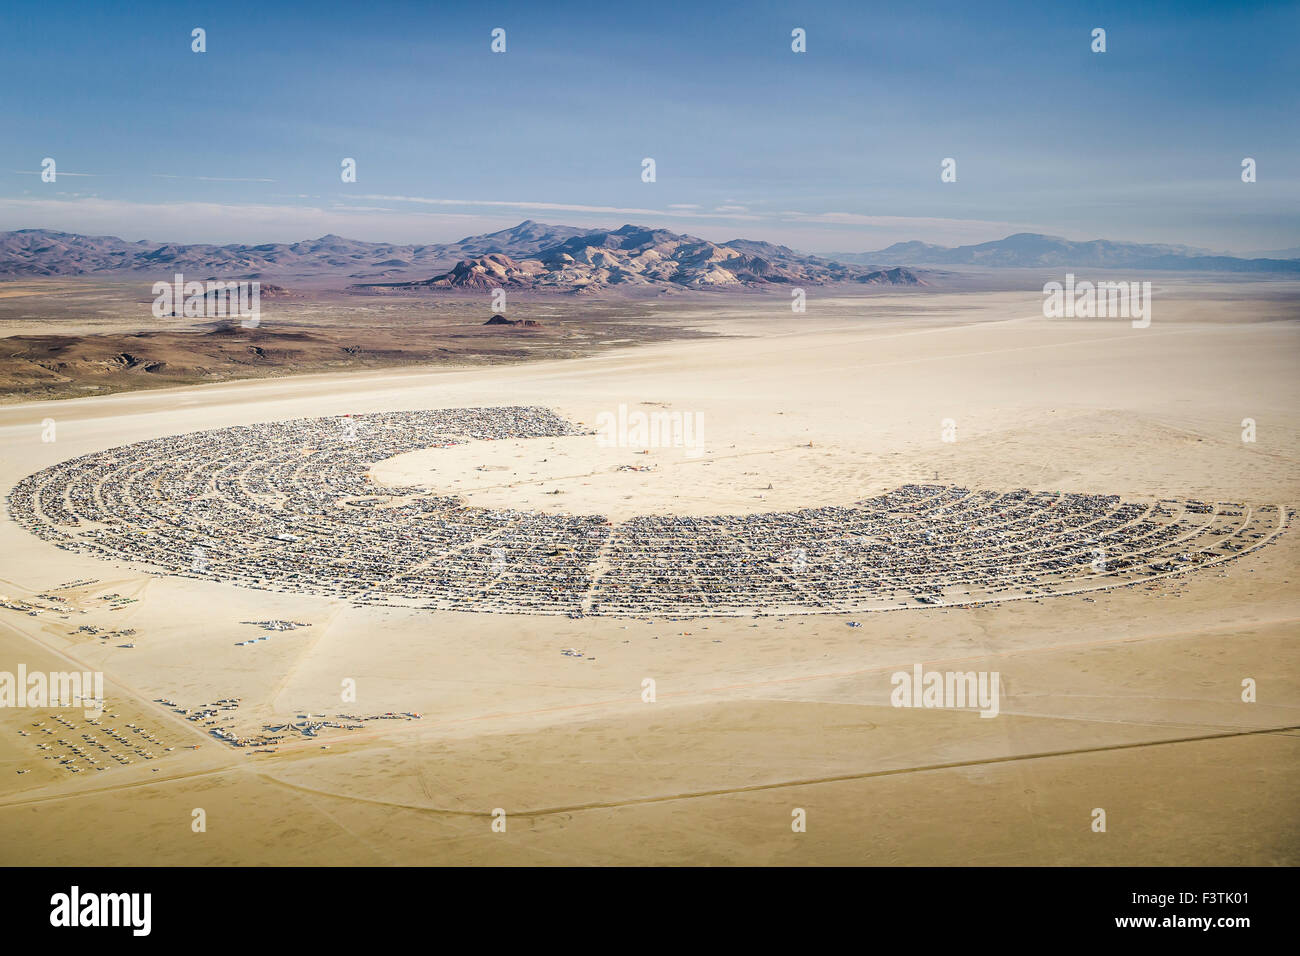 An aerial view of Black Rock City on the second day of Burning Man 2015. © Scott London/Alamy - Stock Image